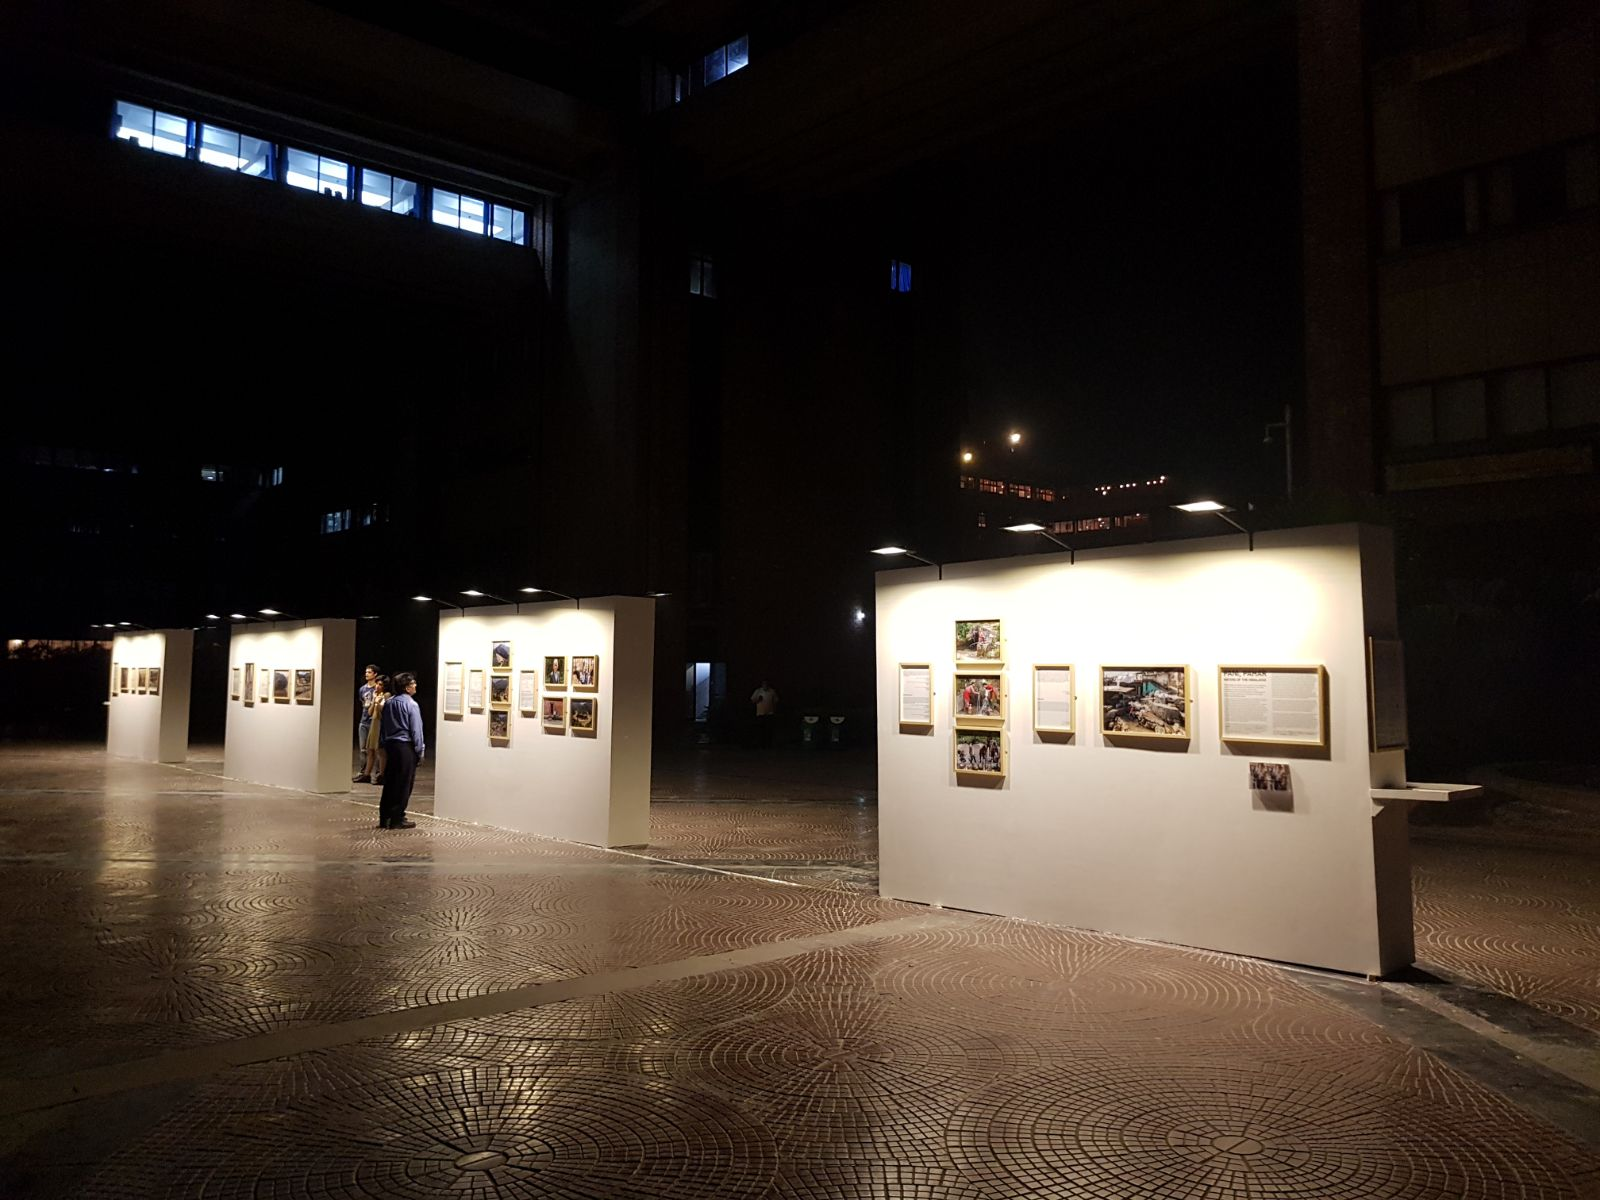 Pani, Pahar exhibition in Delhi